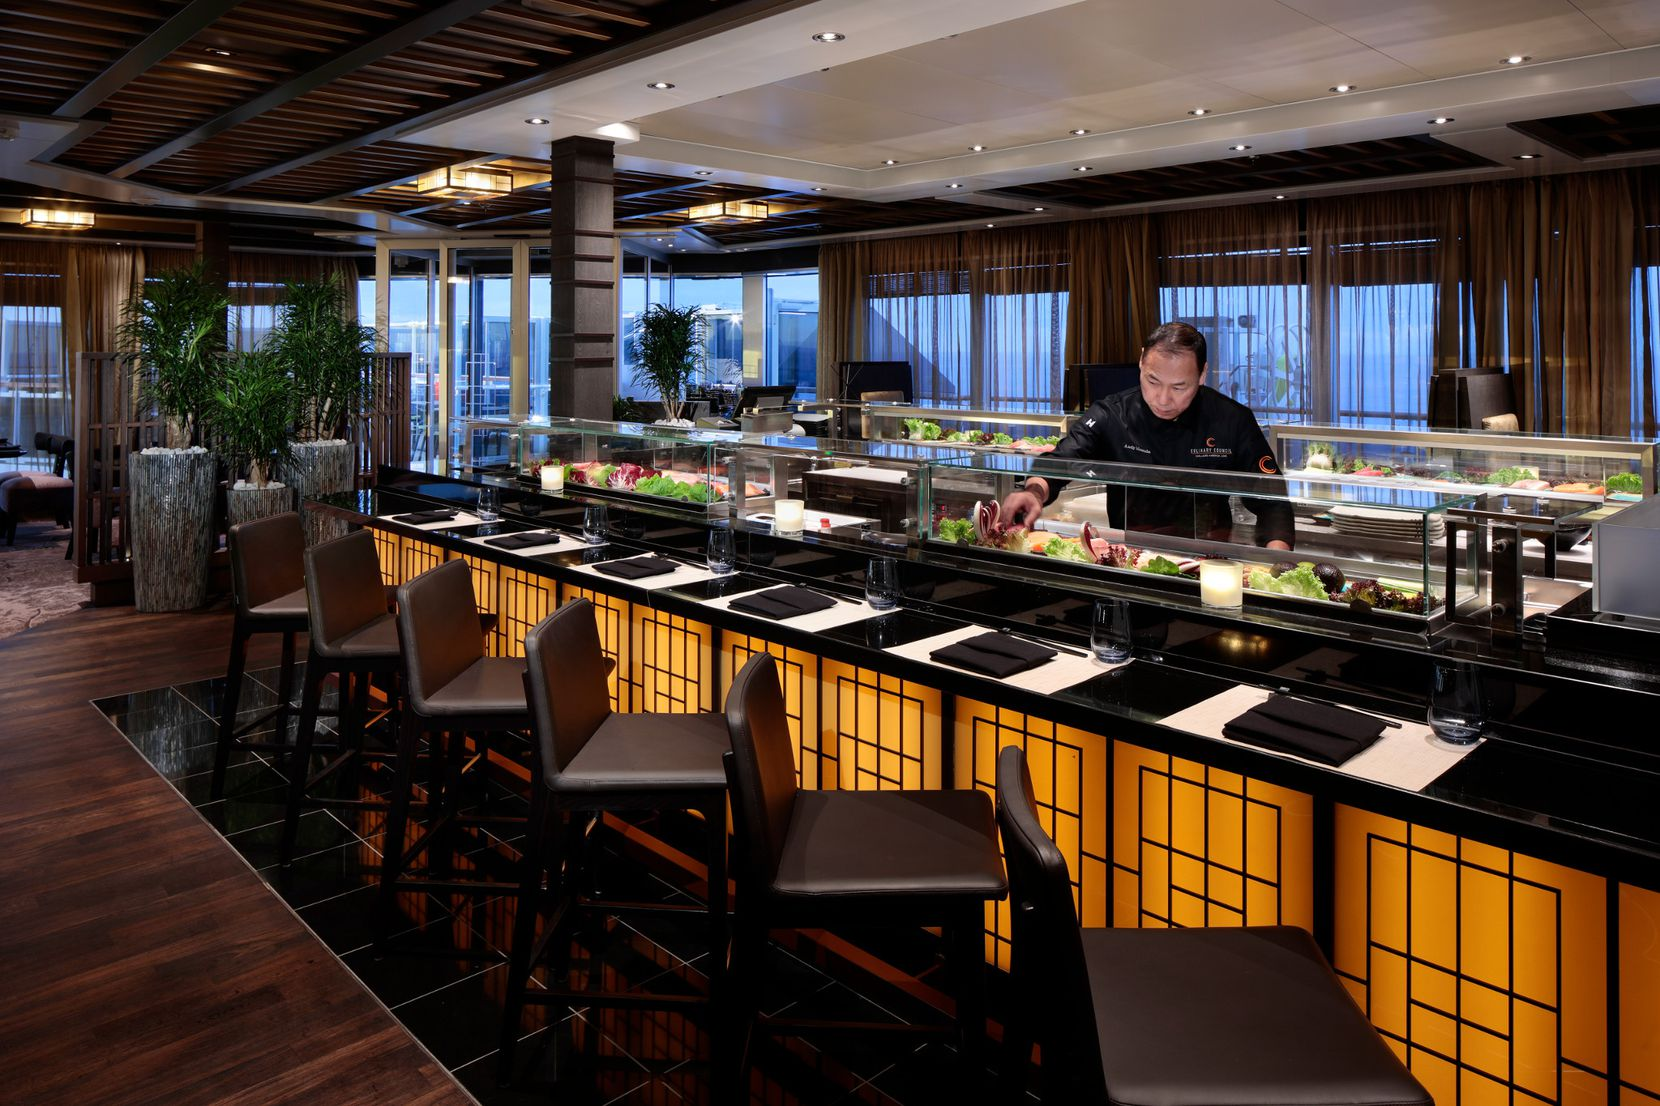 A member of the crew works at Nami Sushi aboard the Nieuw Statendam.